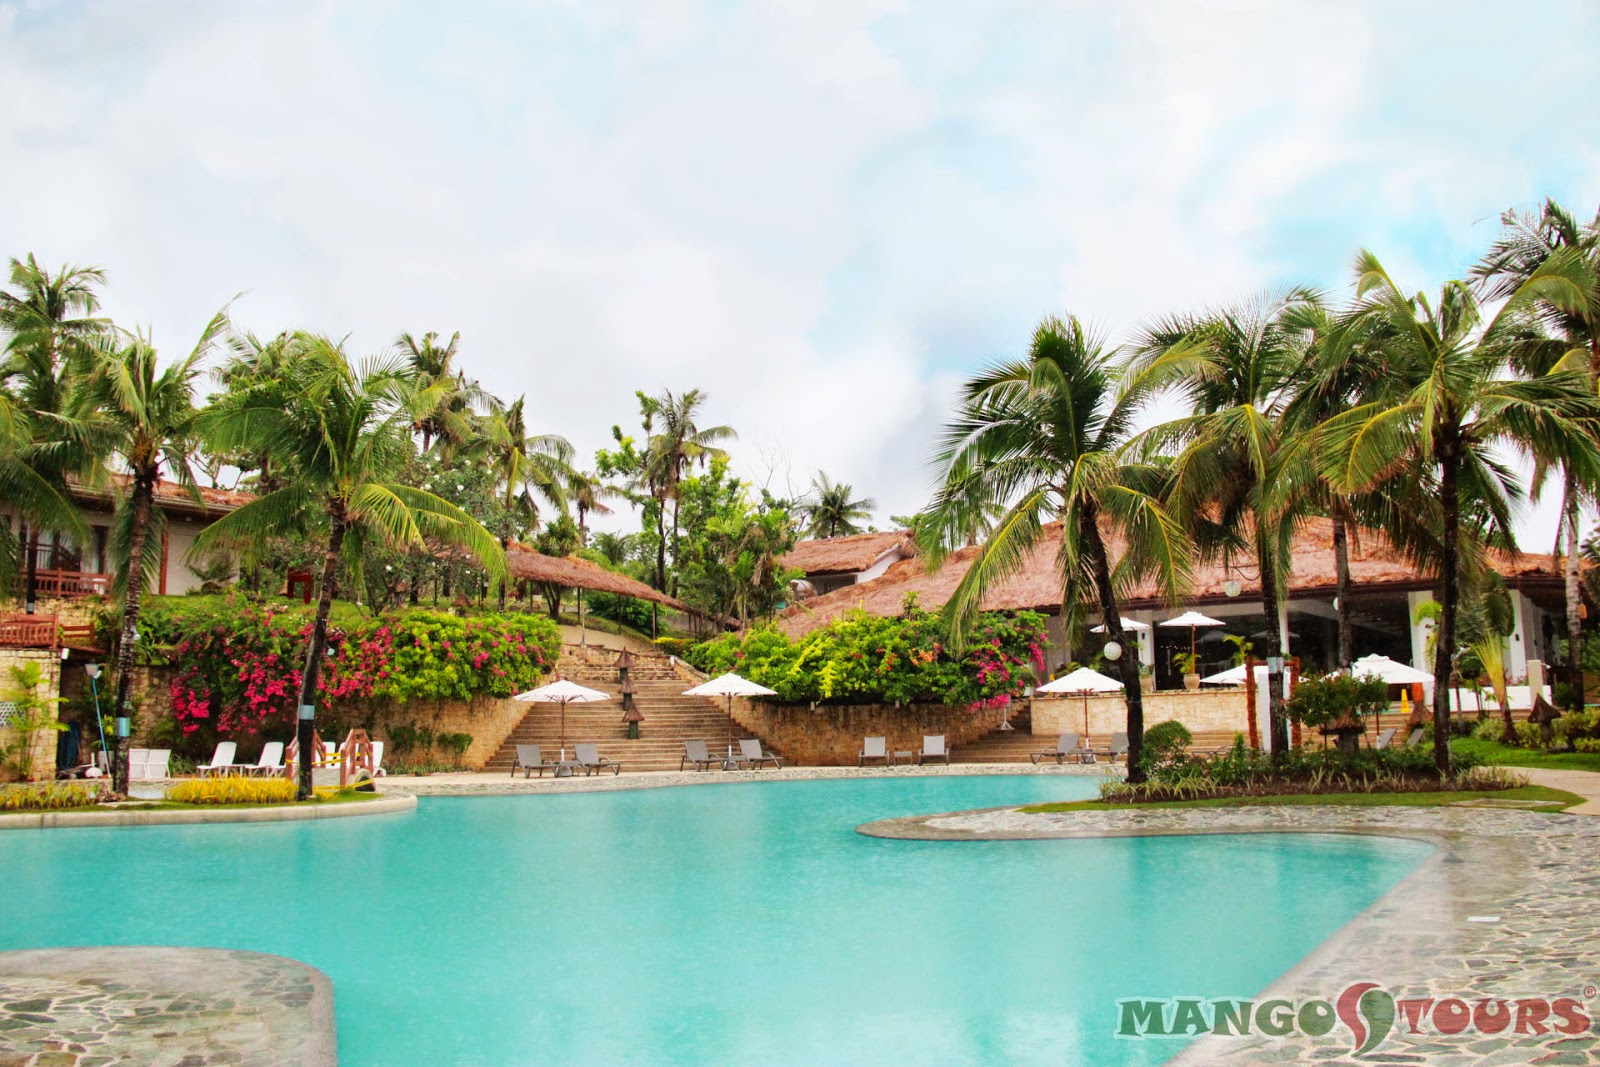 Mango Tours Alegre Beach Resort Philippines swimming pool